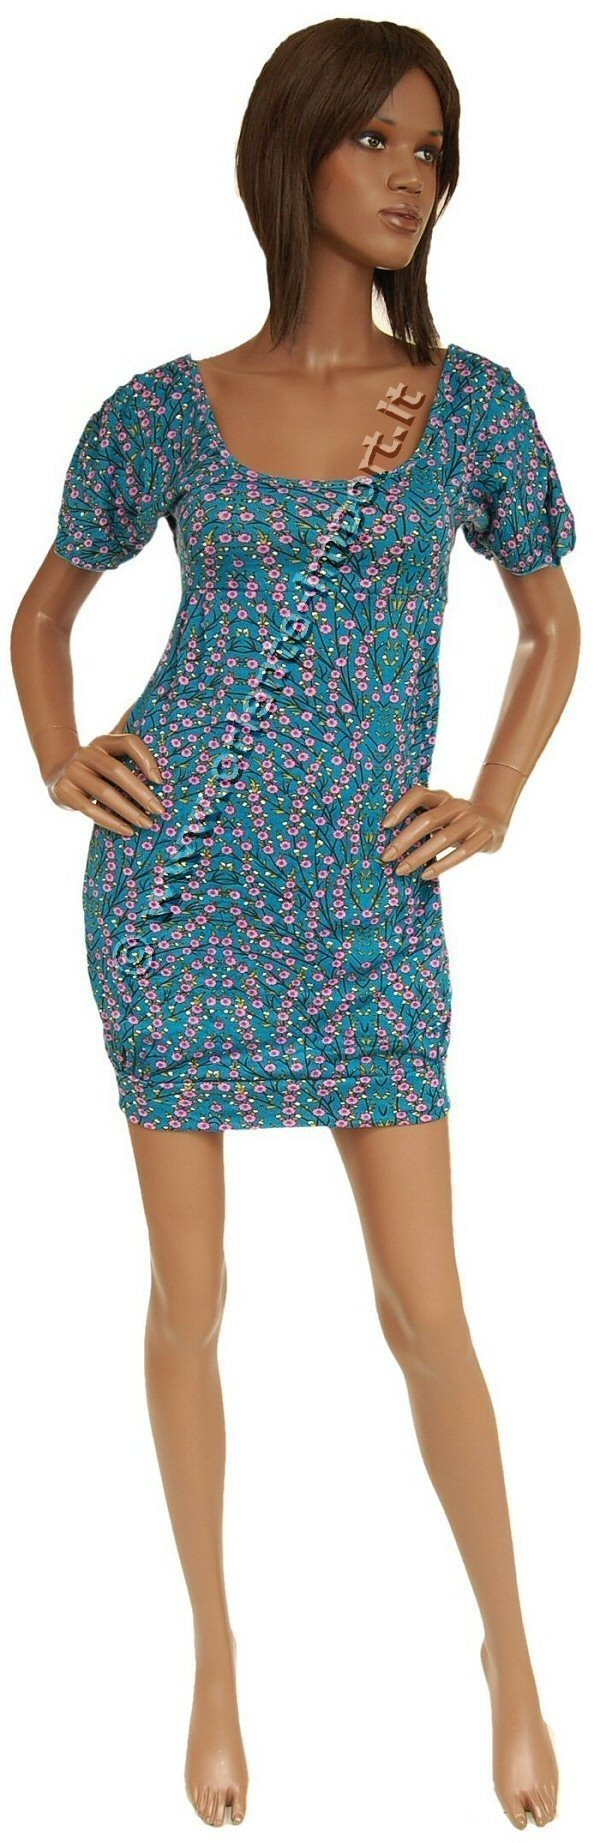 SUMMER JERSEY DRESSES WITH SHORT SLEEVES AB-MRS004M - Oriente Import S.r.l.